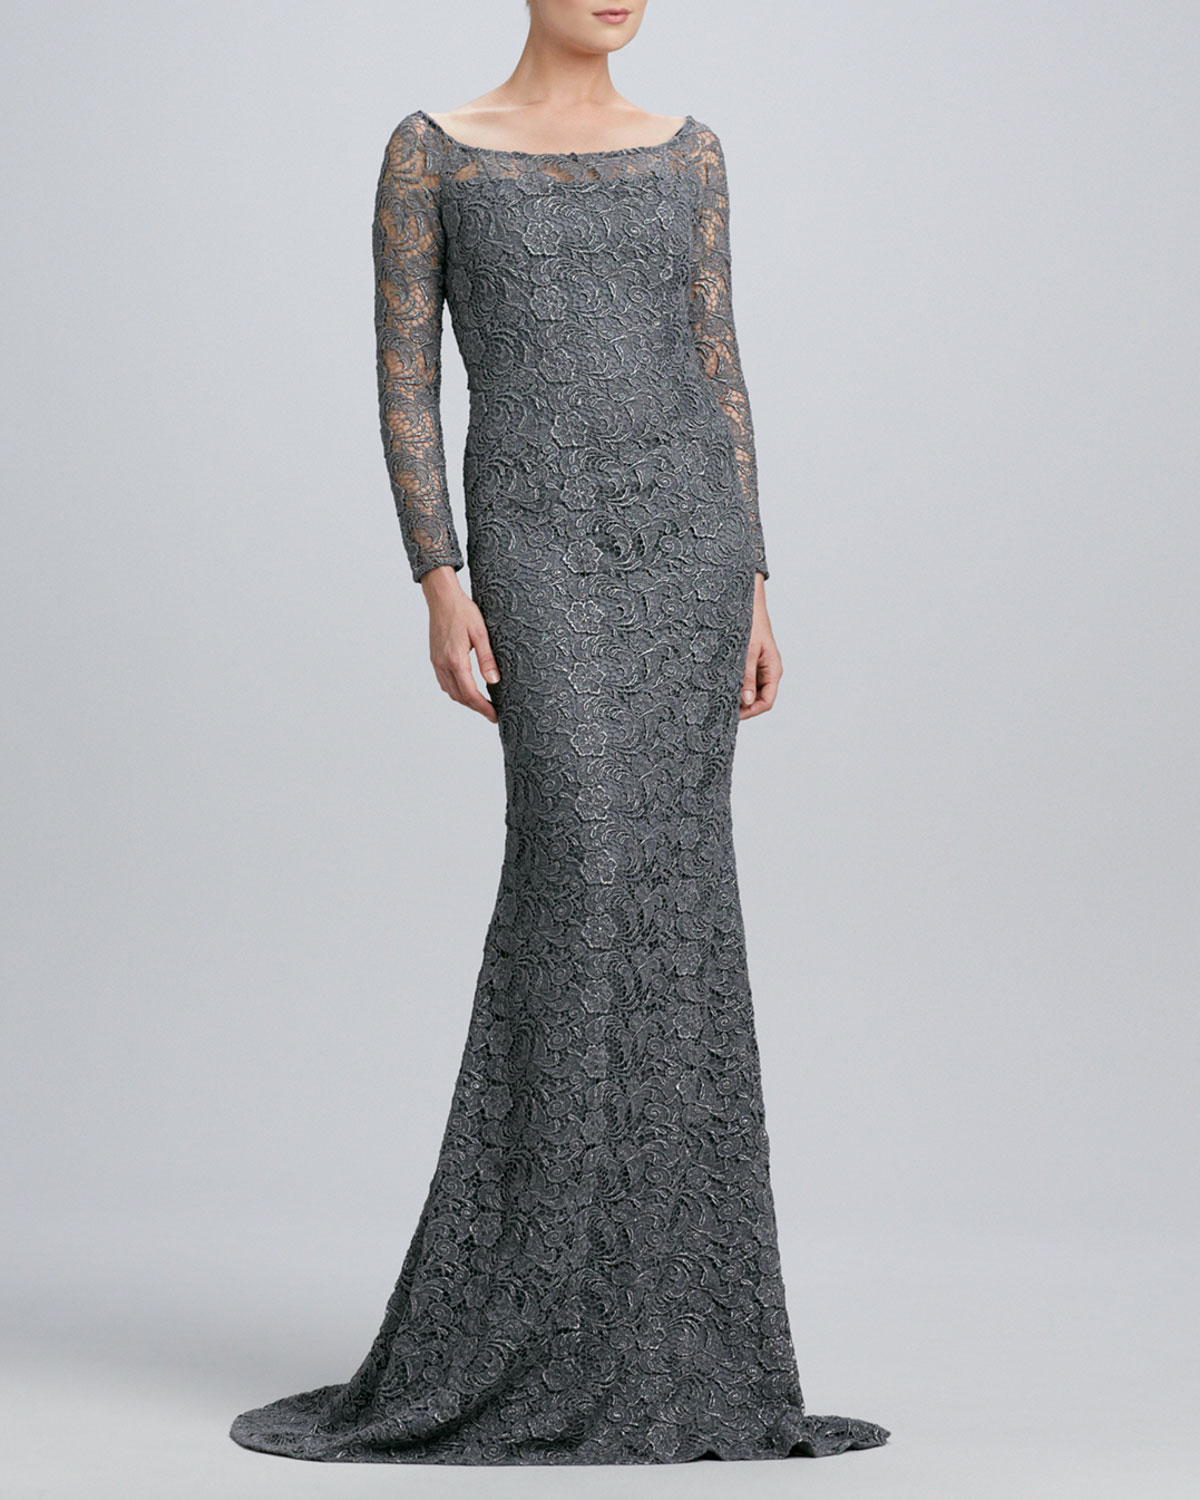 Womens Boat Neck Lace Gown with Metallic Highlights   Carmen Marc Valvo